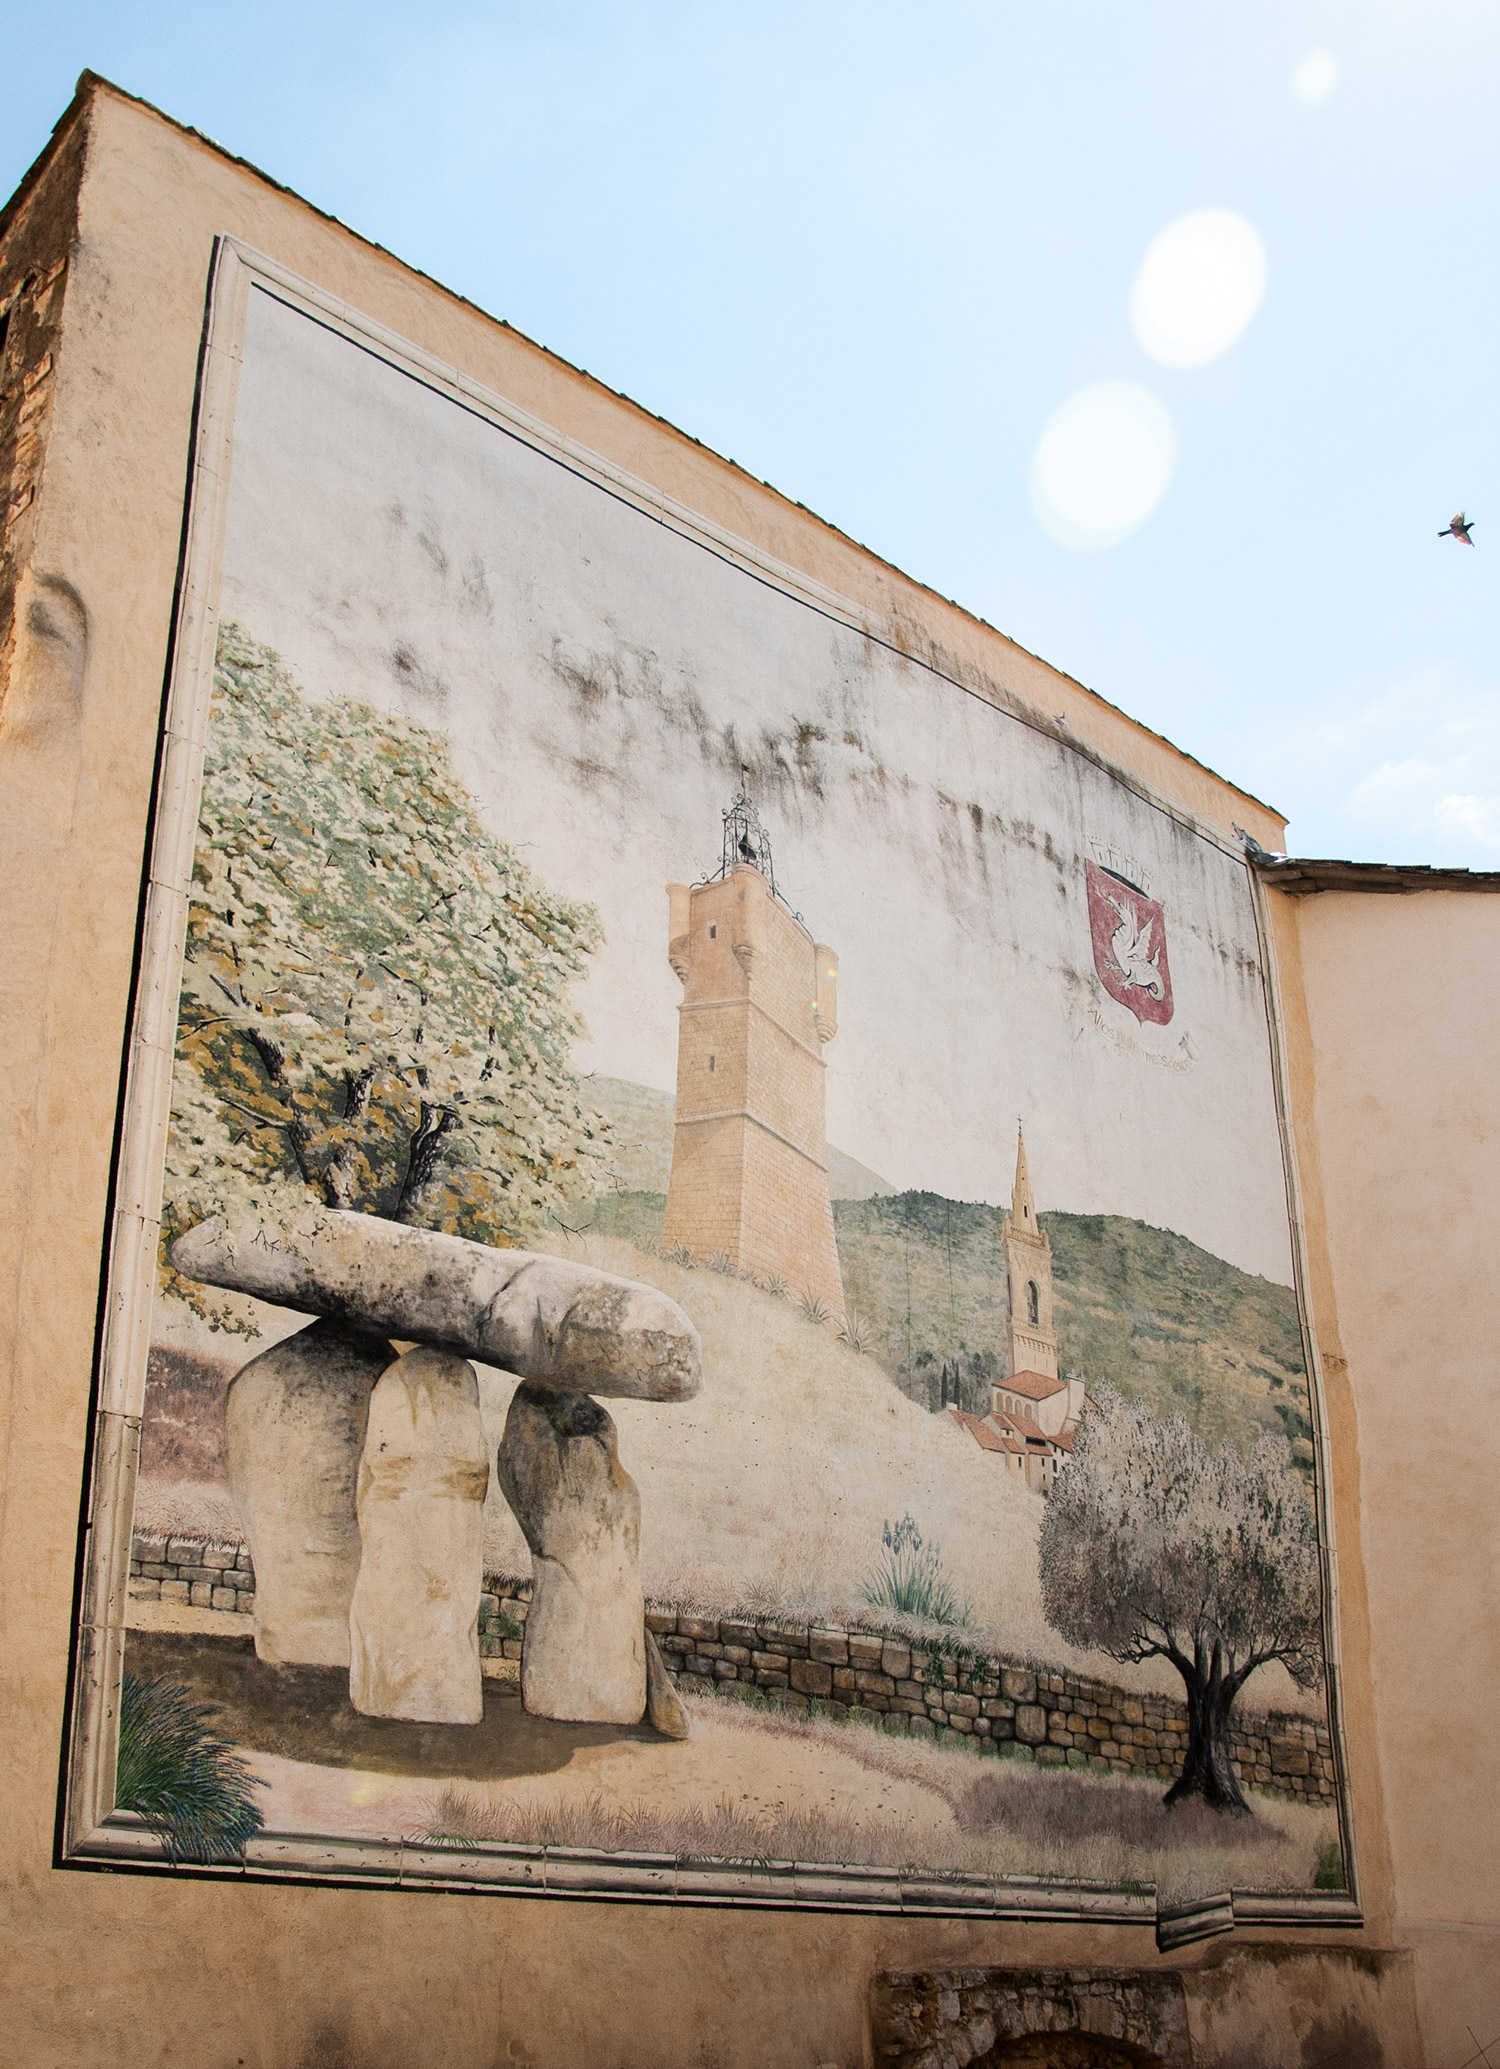 A mural in Draguignan, France, depicting a couple landmarks in the town, including the Dolmen Pierre de la fée, a Celtic structure on the bottom left, the clocktower, the church, and the red coat of arms in the top right.